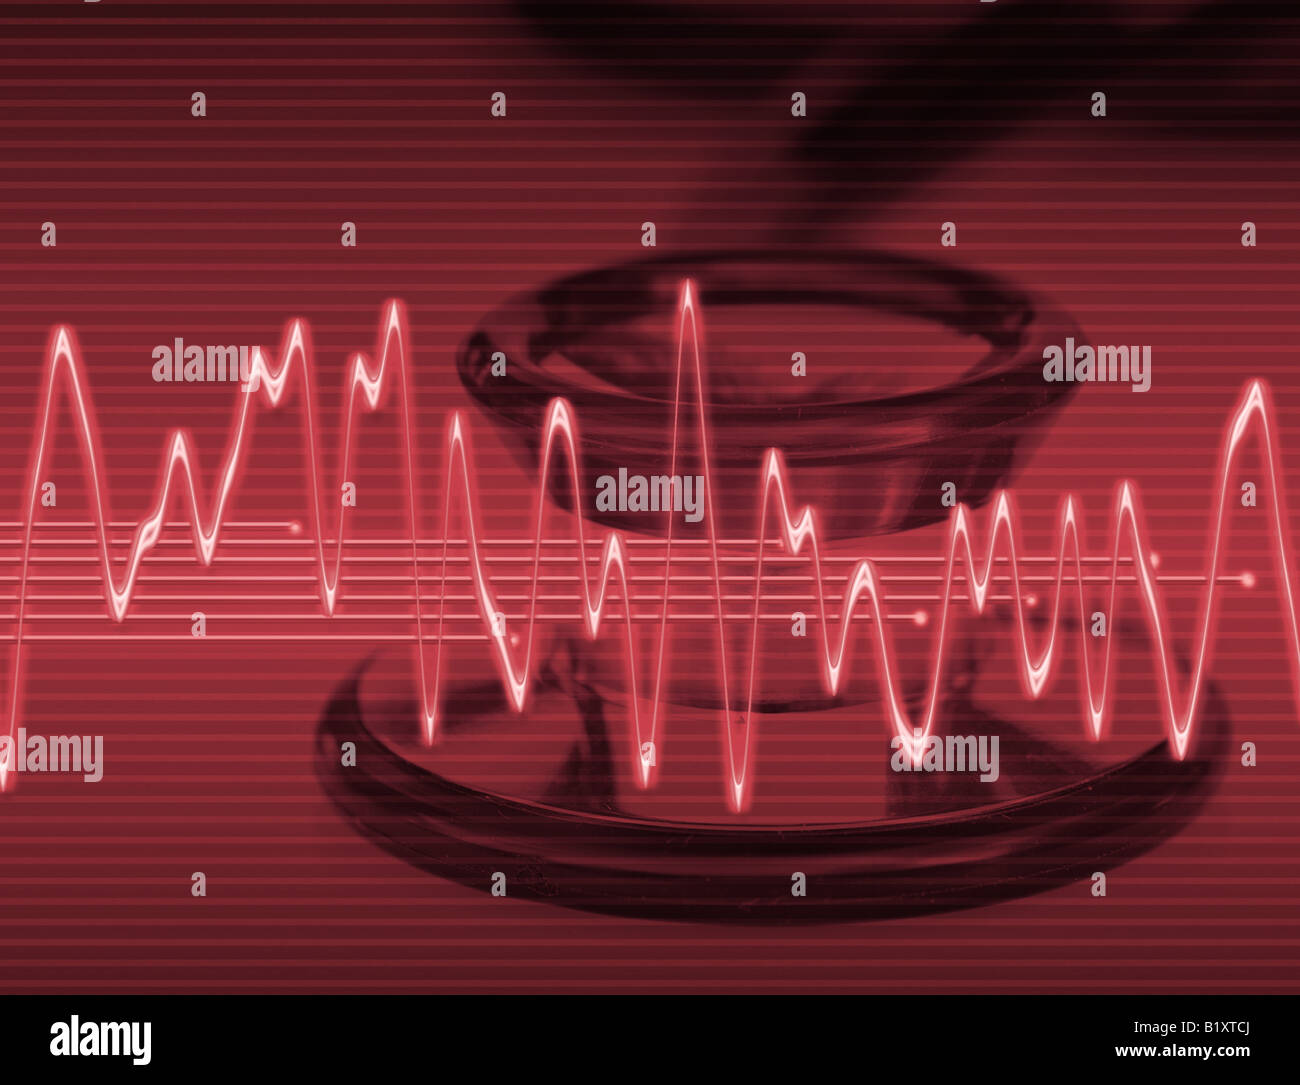 large abstract image for medical technology or trauma - Stock Image